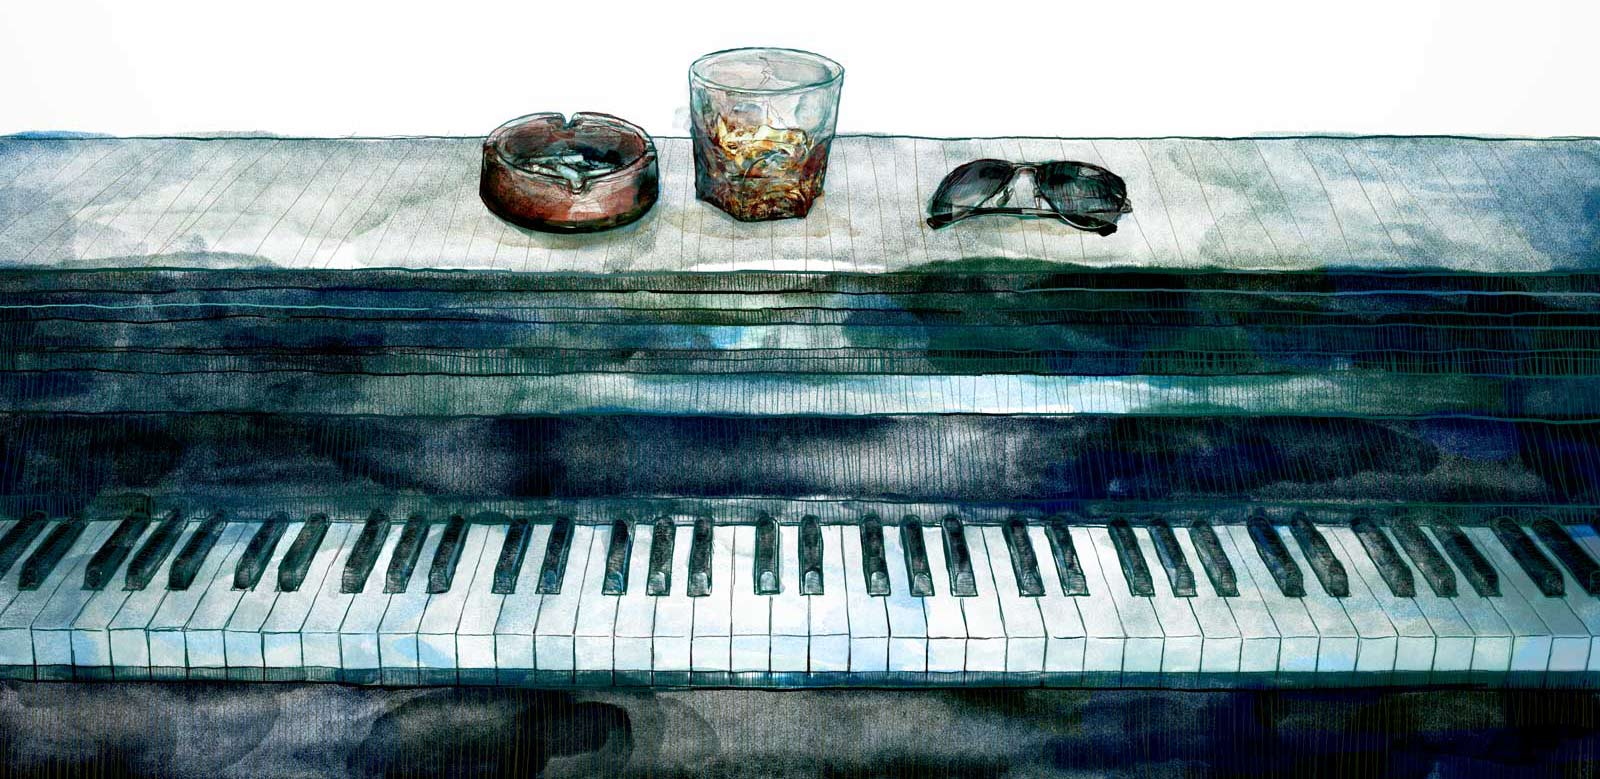 Mario Jodra illustration - Piano